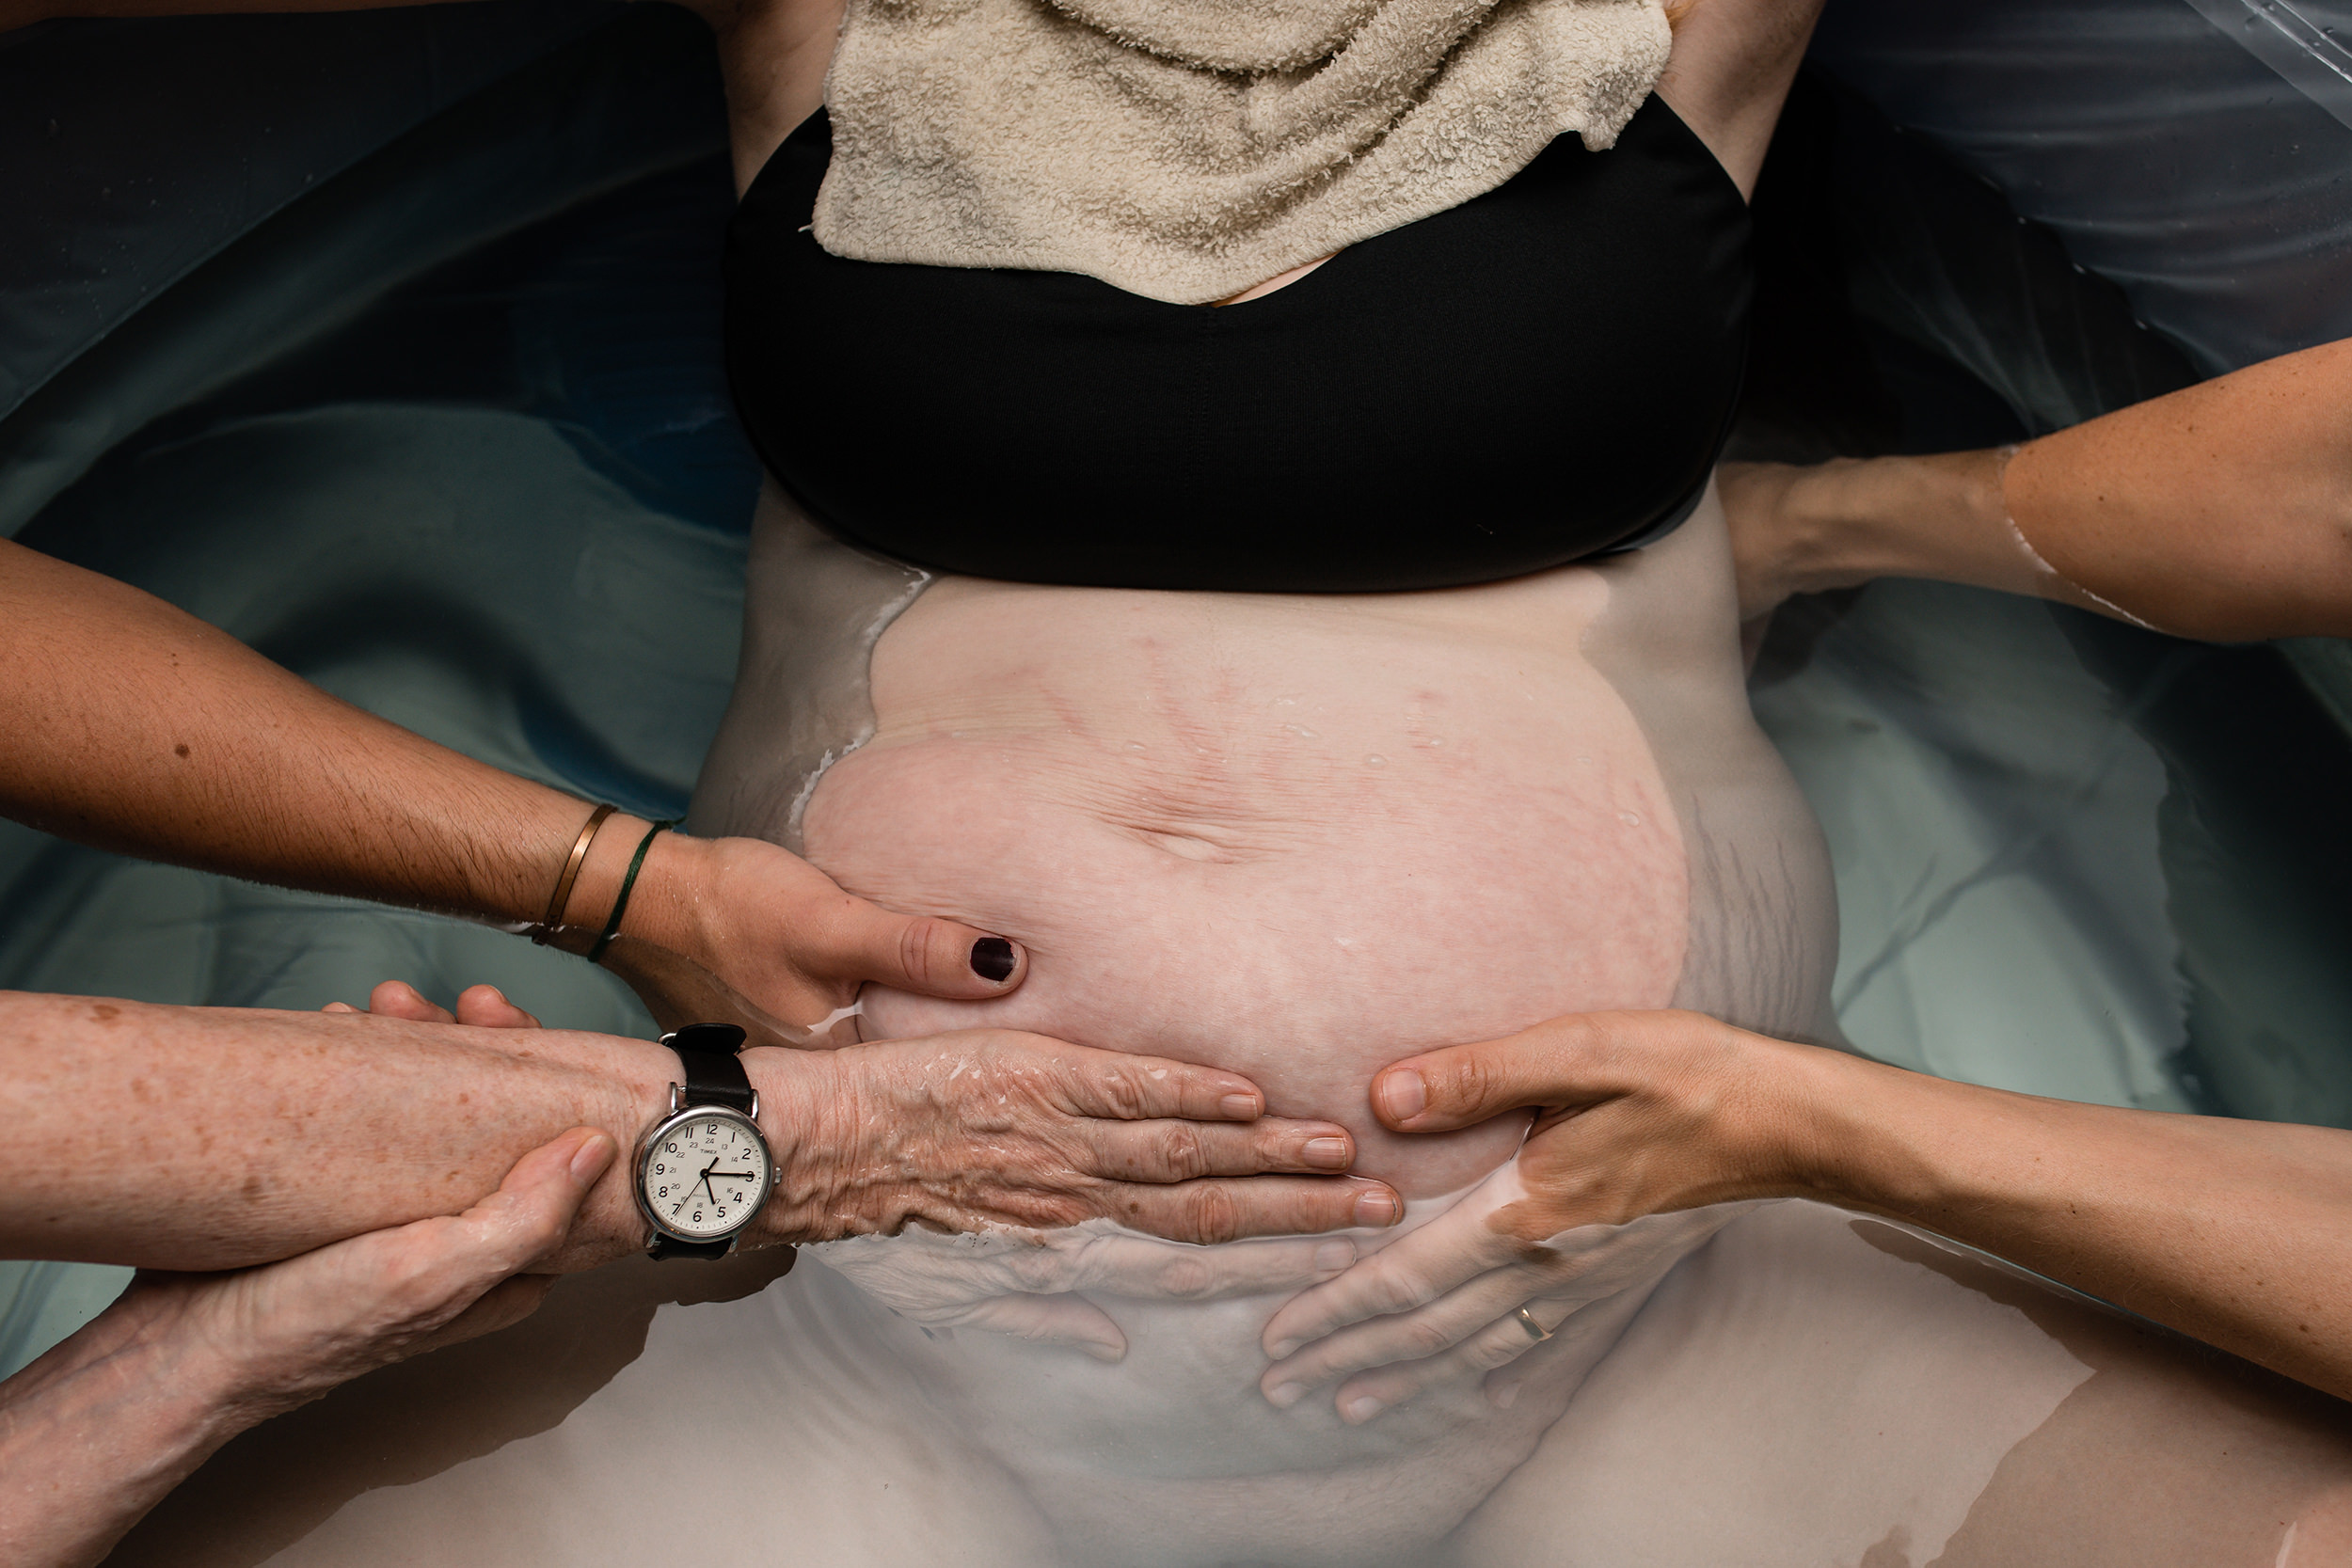 supportive hands on laboring mothers belly during home water birth